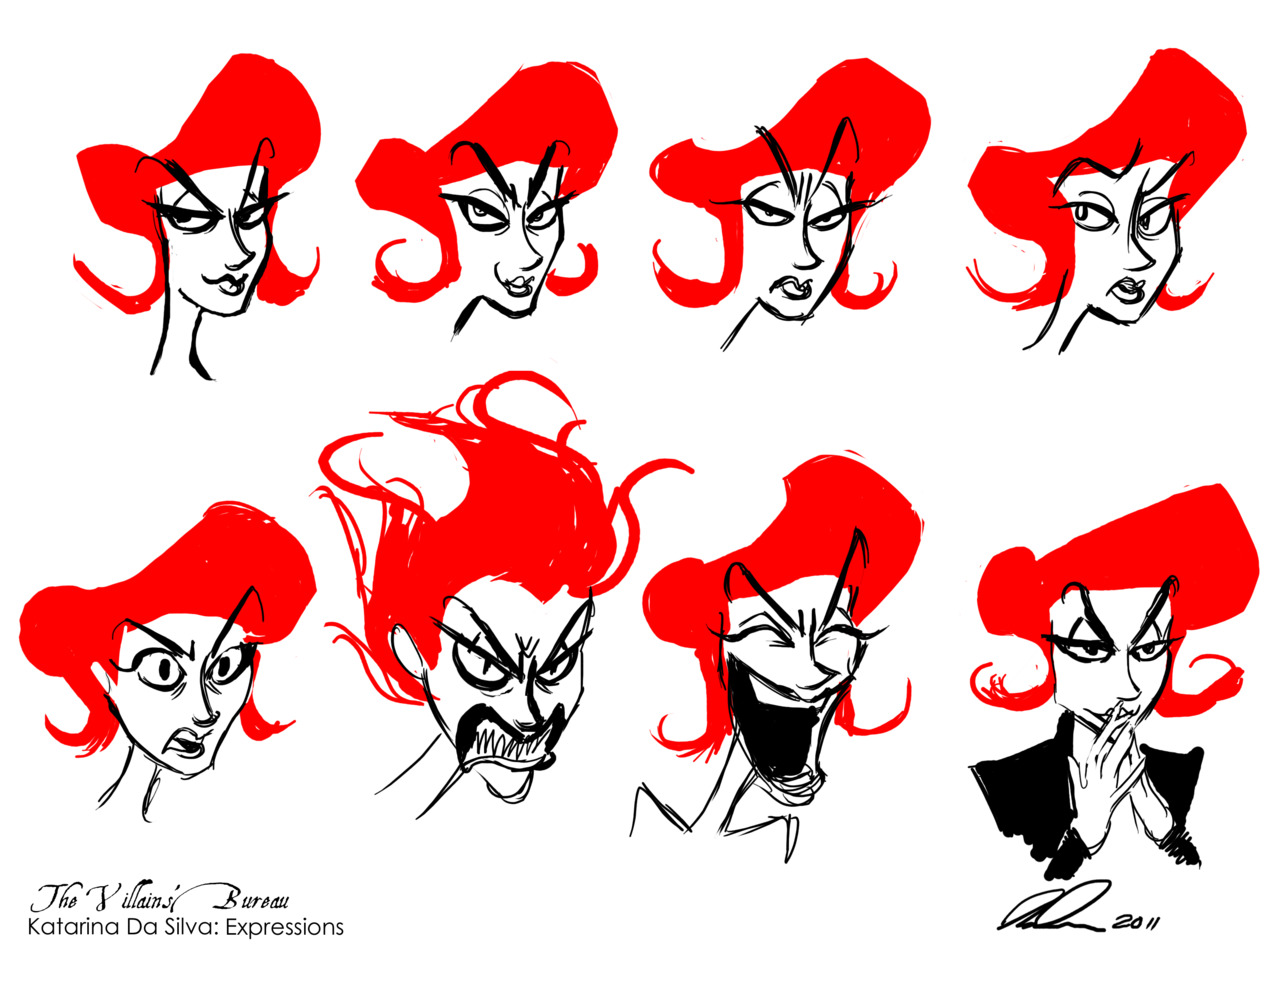 More of Katarina Da Silva, for my Villains' Bureau project. I'm trying to nail down her expressions here. This picture was inspired by  this  post by my immensely talented friend  NinaSerena .